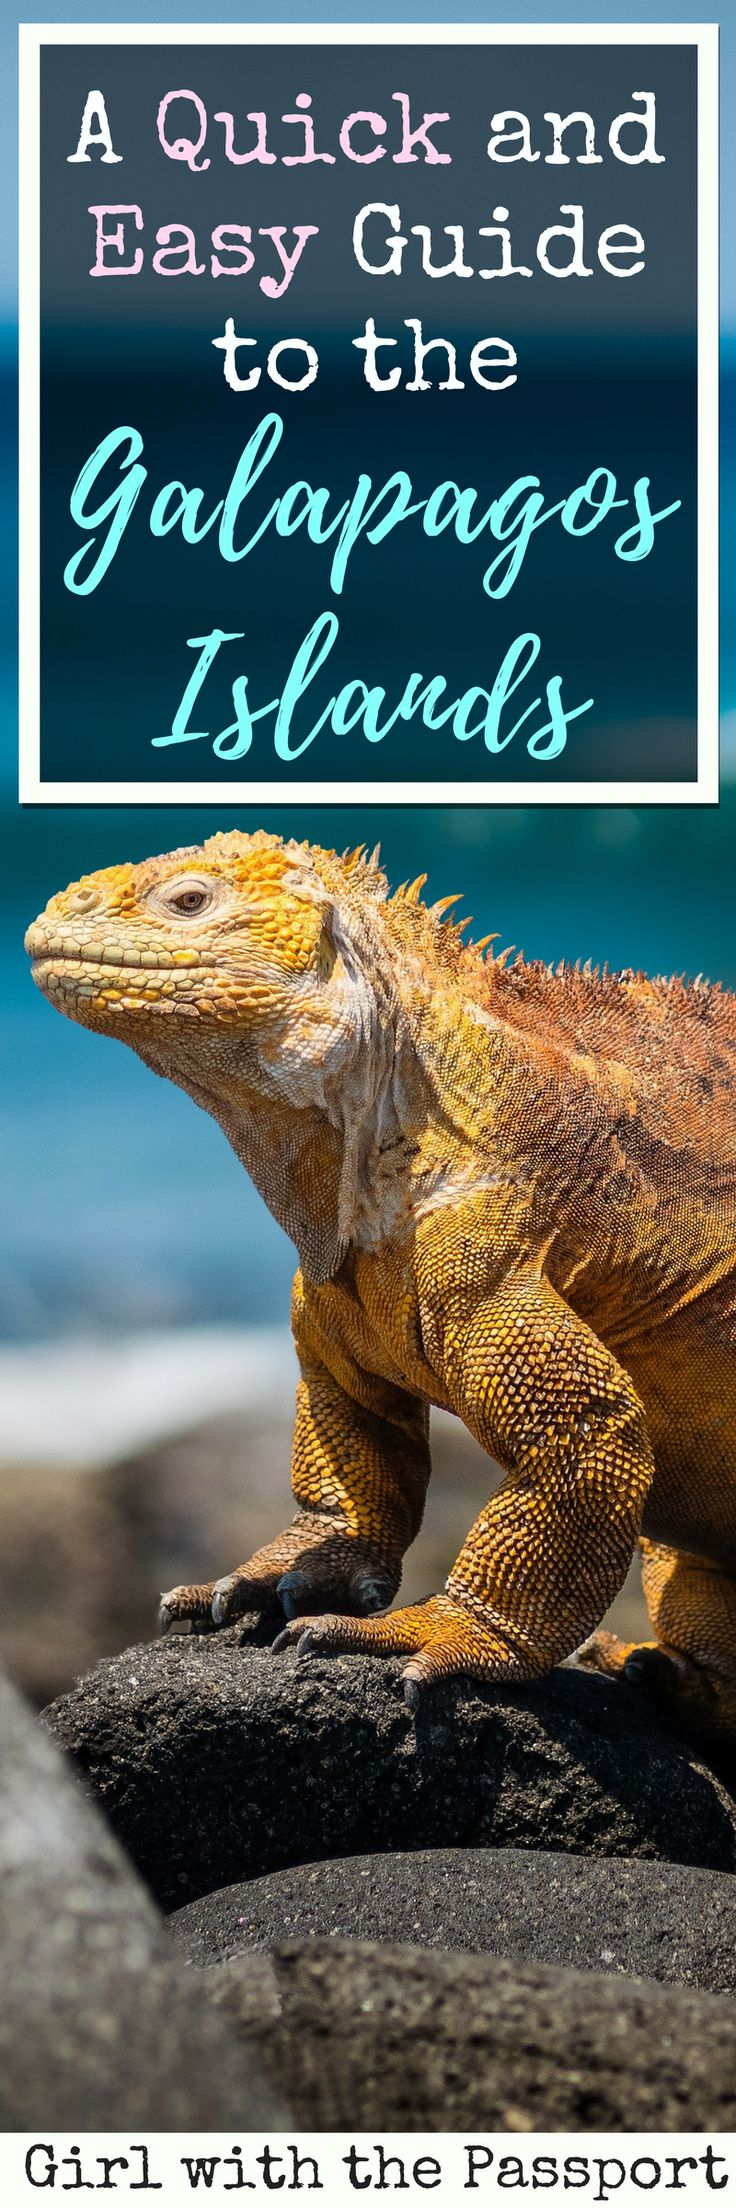 Trying to plan a cheap and easy vacation to the galapagos islands in ecuador? Then check out this budget guide, which will help you create the best Galapagos Islands itinerary ever. This way, you can tick a another site off of your ever growing bucketlist.